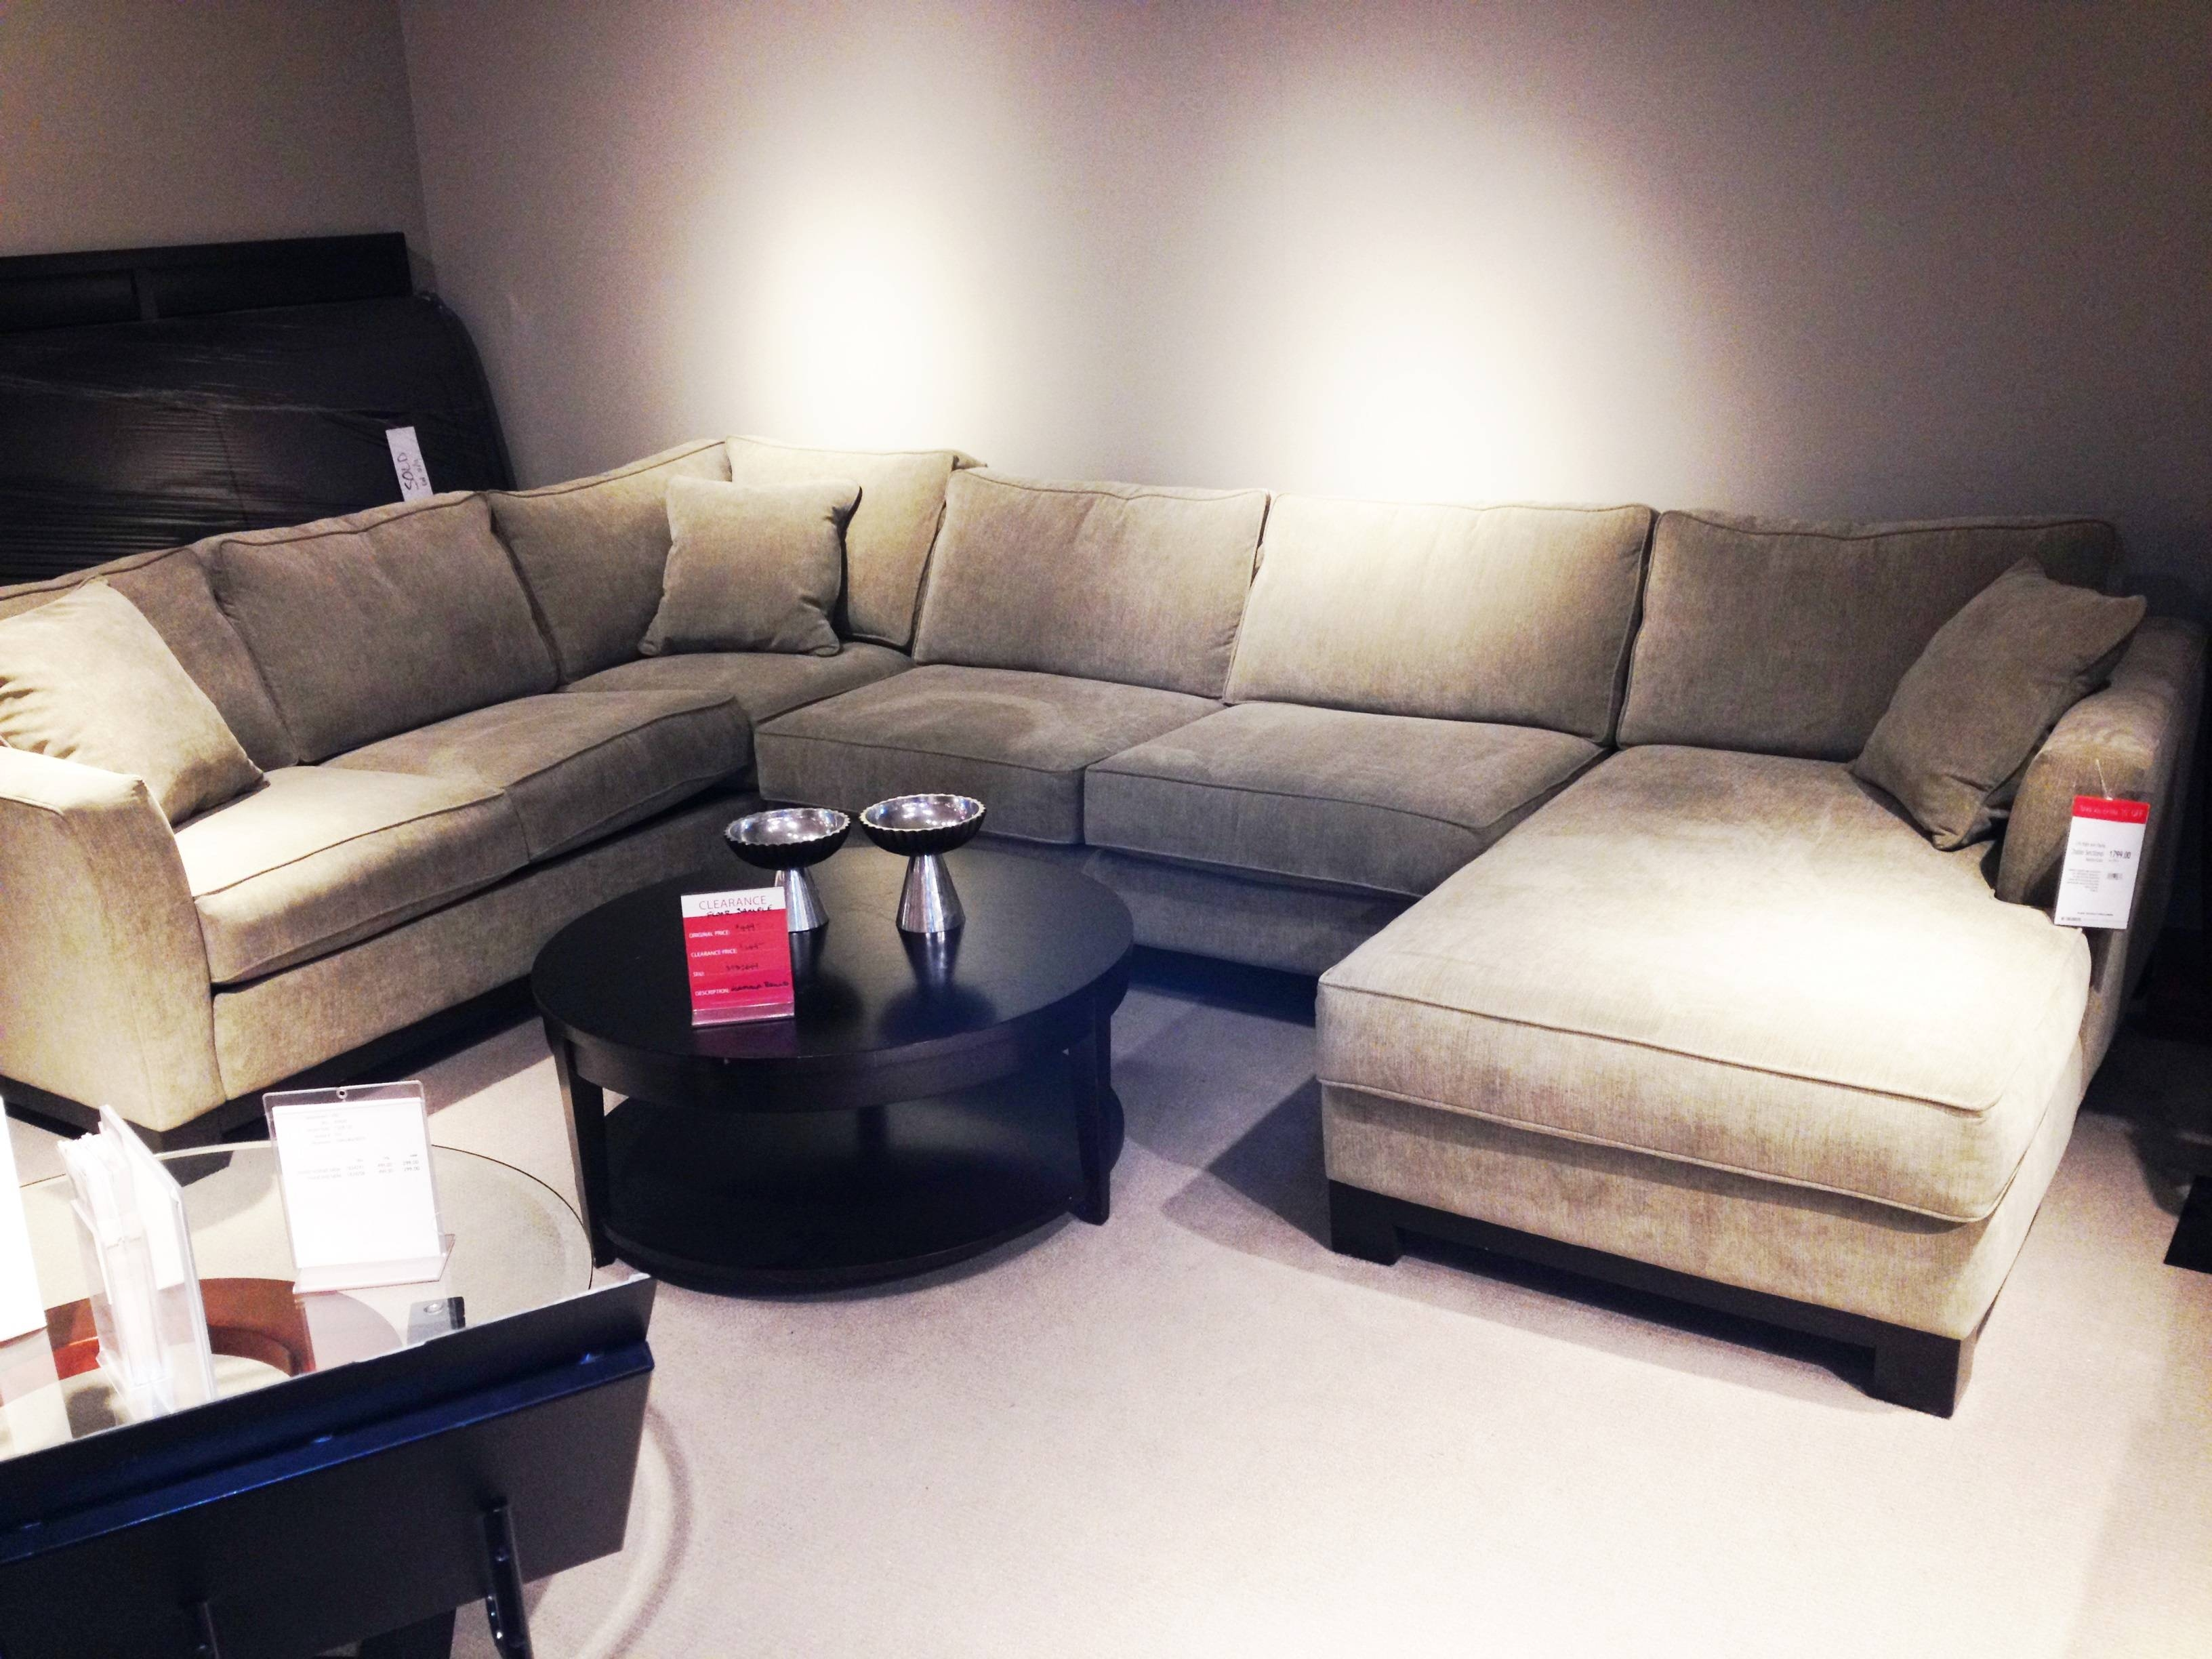 The Sectional Sofa Saga | Mid Century Modern(Ization) With Regard To Macys Leather Sofas Sectionals (View 18 of 25)